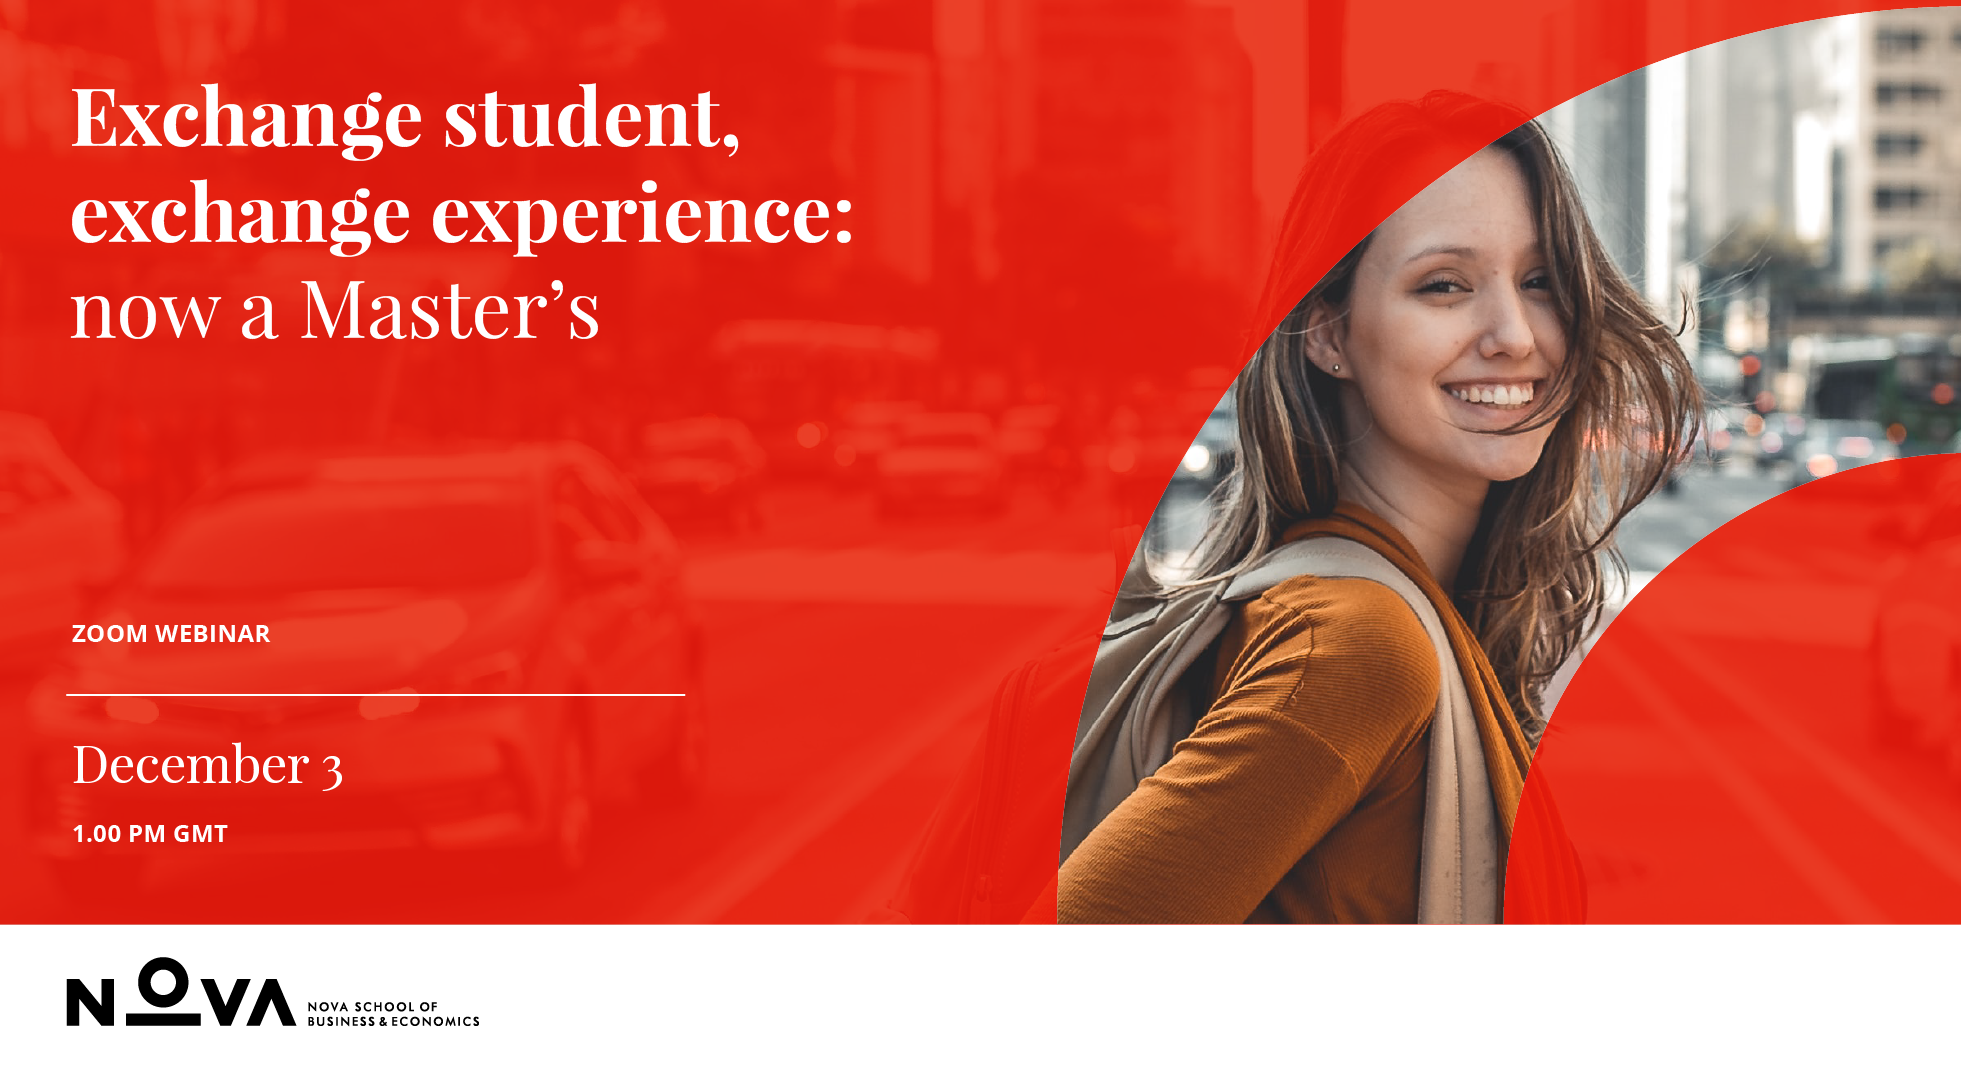 Exchange student, exchange experience: now a Master's